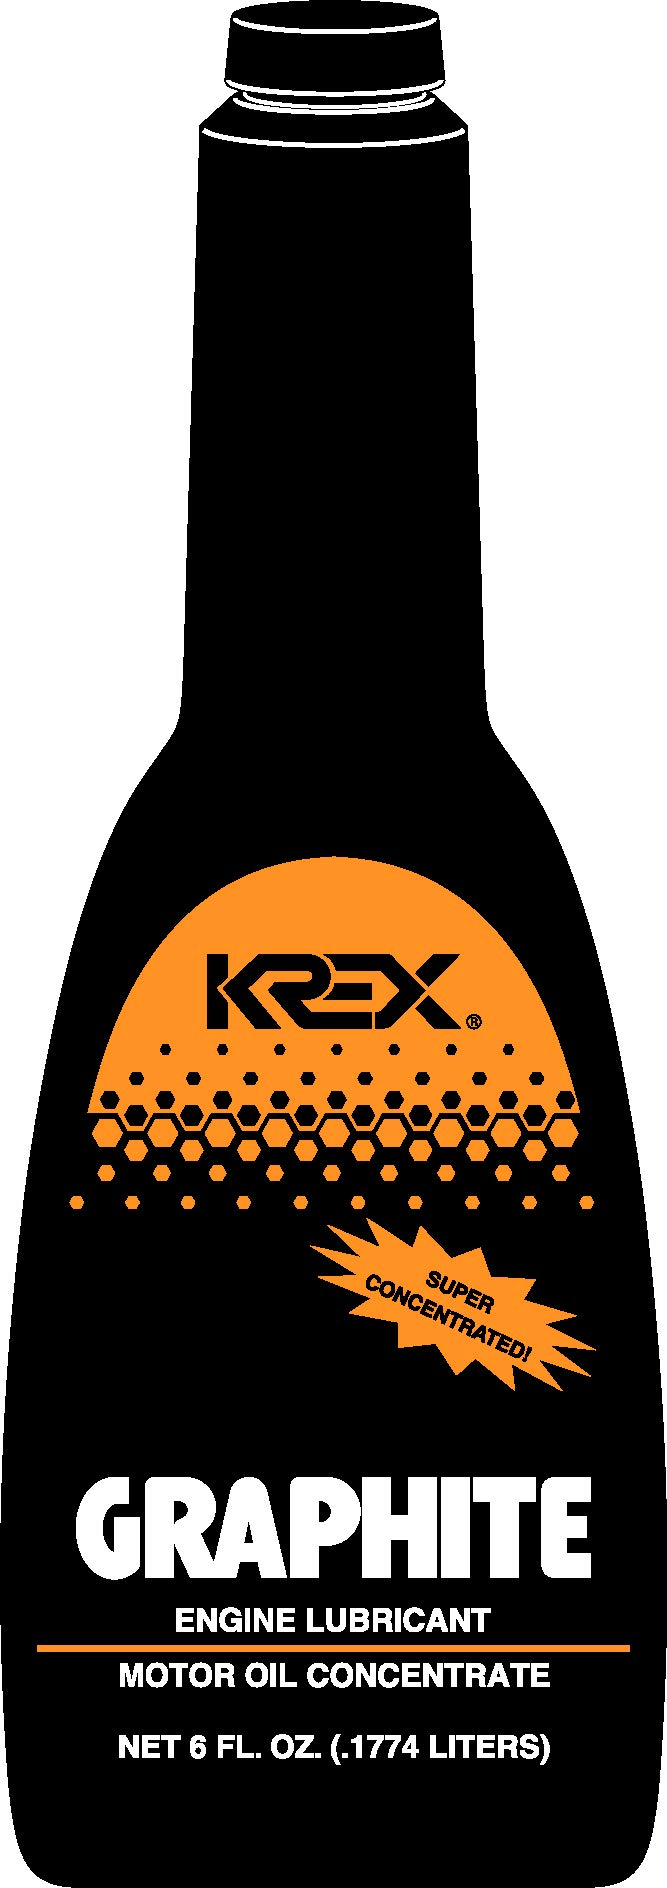 Krex Graphite Engine Lubricant 6 Fl. Oz. - 1 Bottle product image